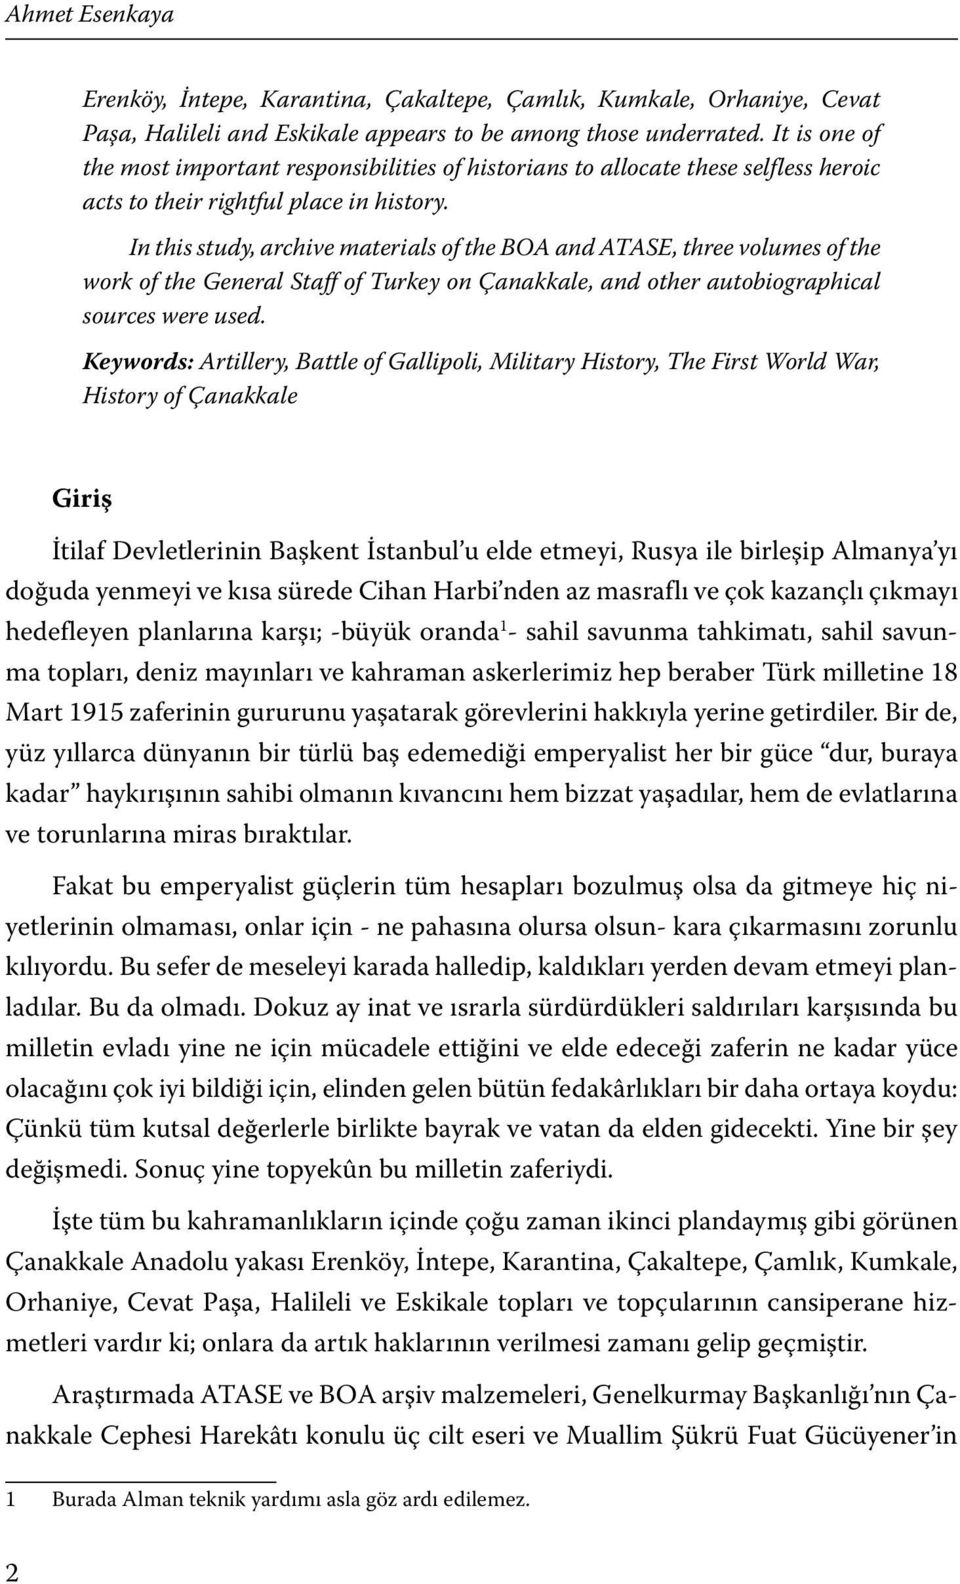 In this study, archive materials of the BOA and ATASE, three volumes of the work of the General Staff of Turkey on Çanakkale, and other autobiographical sources were used.